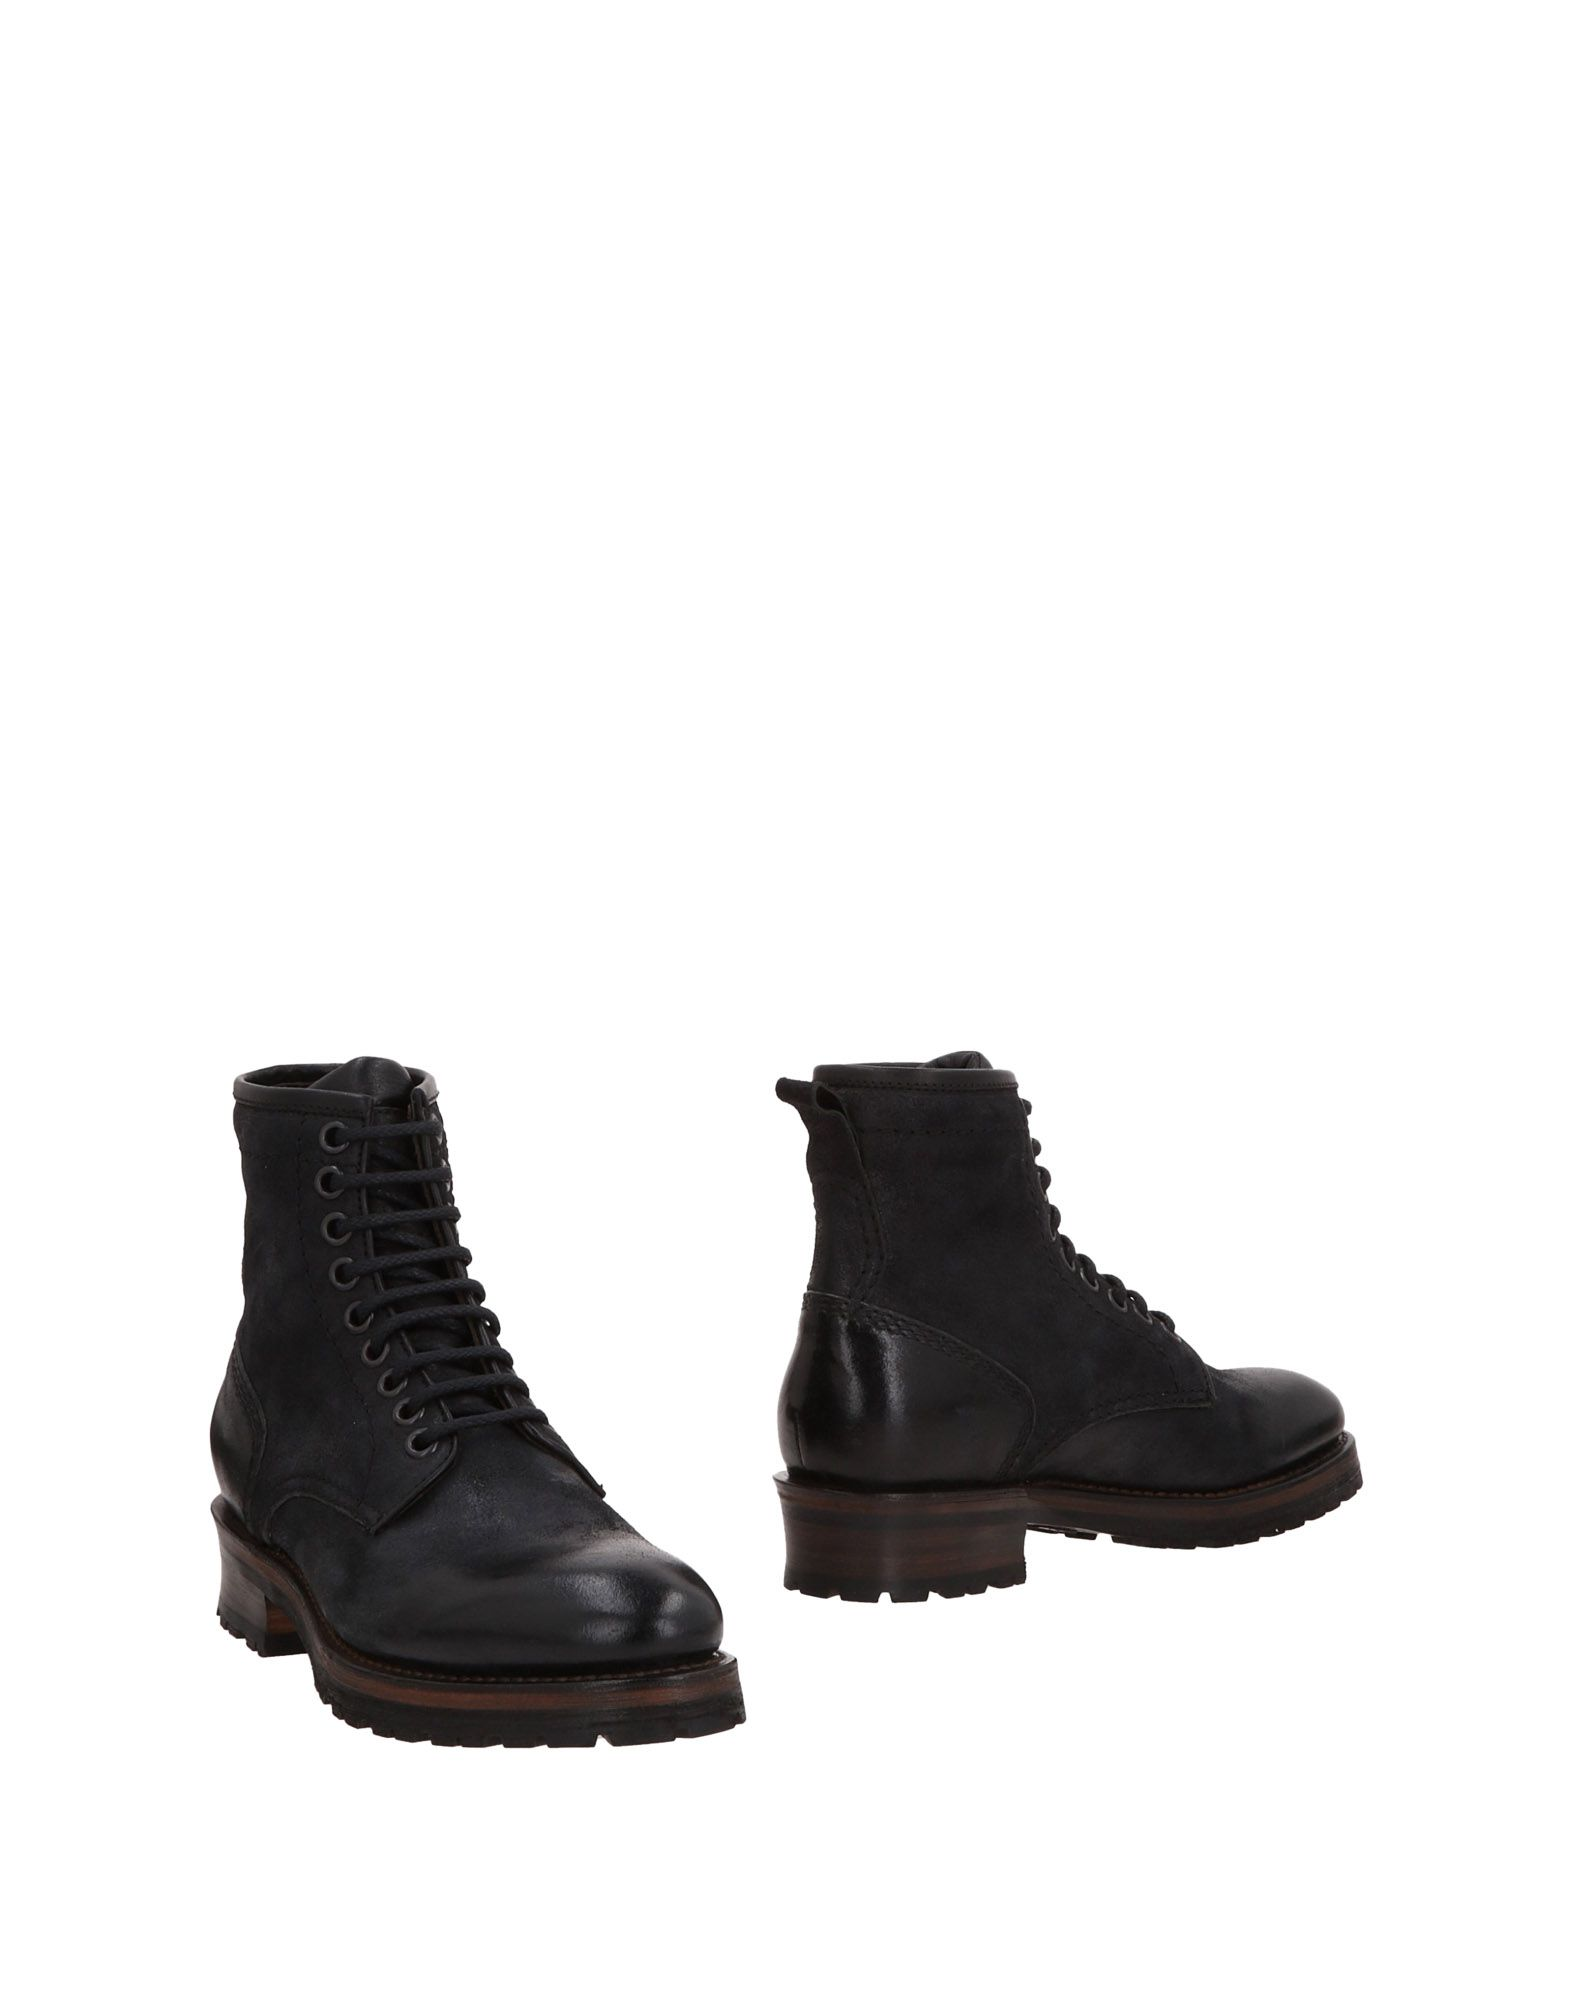 PROJECT TWLV Boots in Black